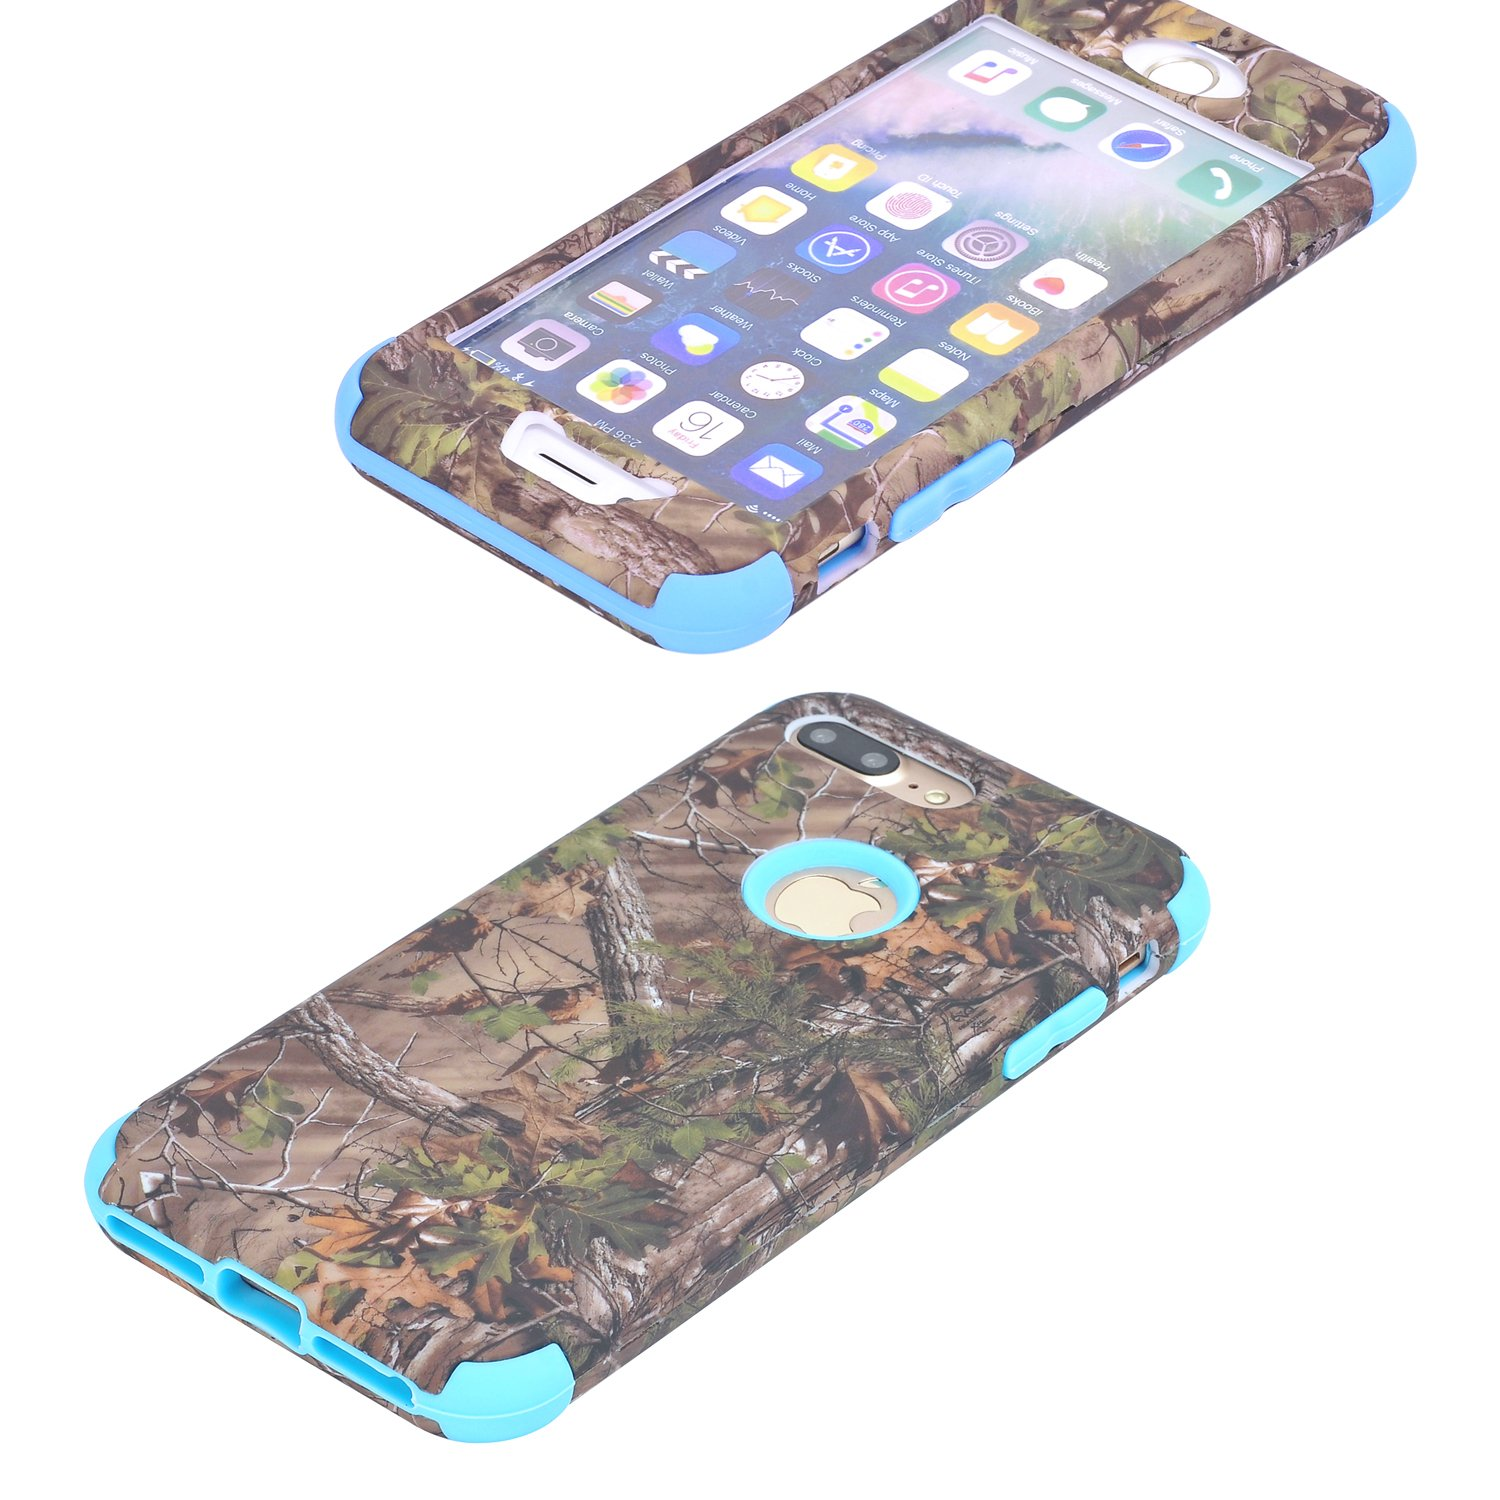 Amazon.com: iPhone 8 Plus Case/iPhone 7 Plus Cover, Harsel Camouflage Design 2 Layer Hybrid Armor Soft Silicone Hard Plastic Shockproof Bumper High Impact ...